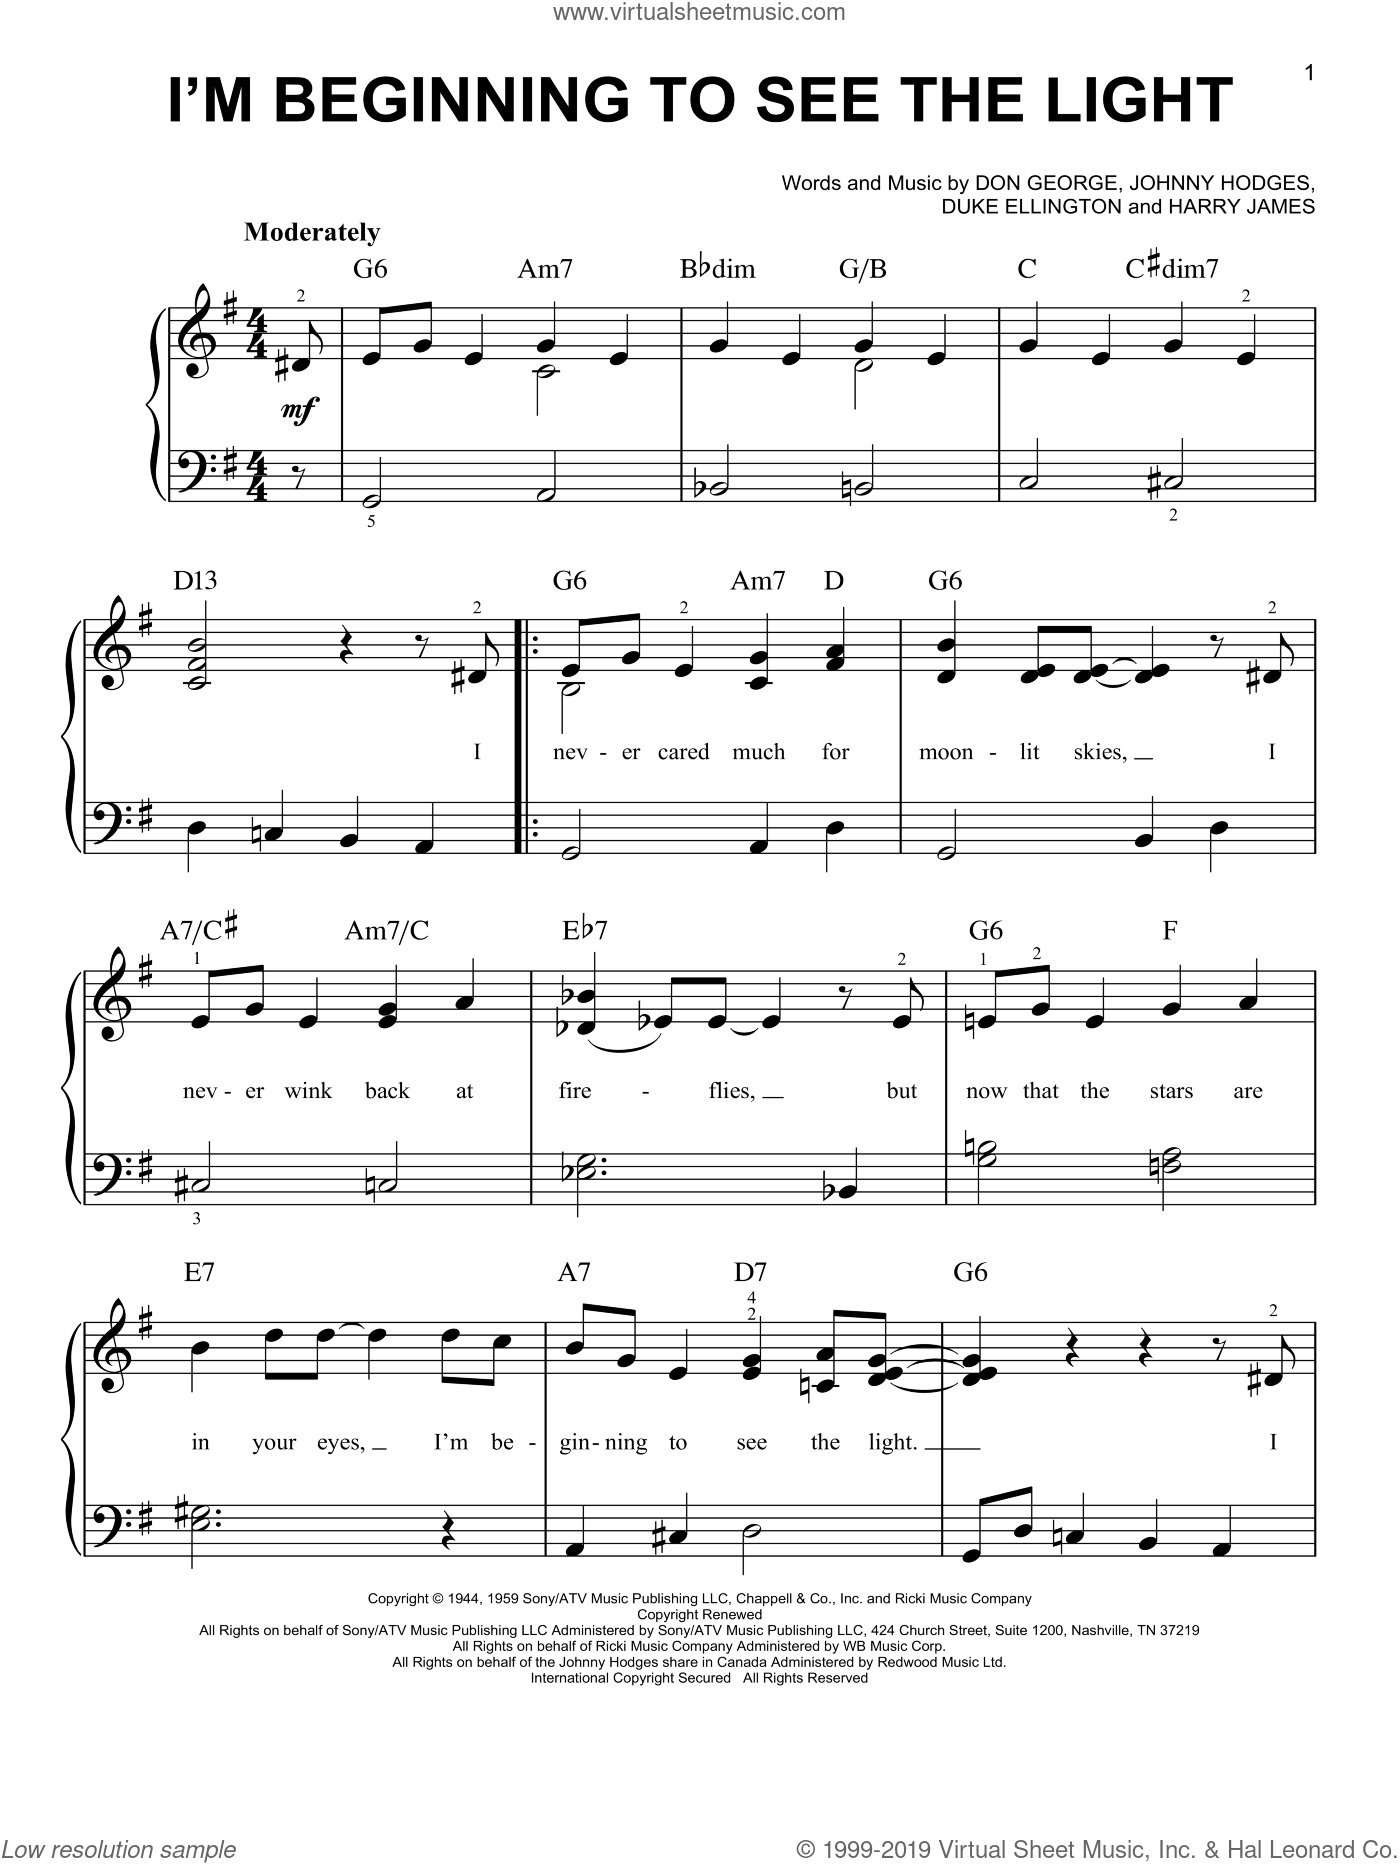 I'm Beginning To See The Light sheet music for piano solo by Duke Ellington, Don George, Harry James and Johnny Hodges, easy skill level